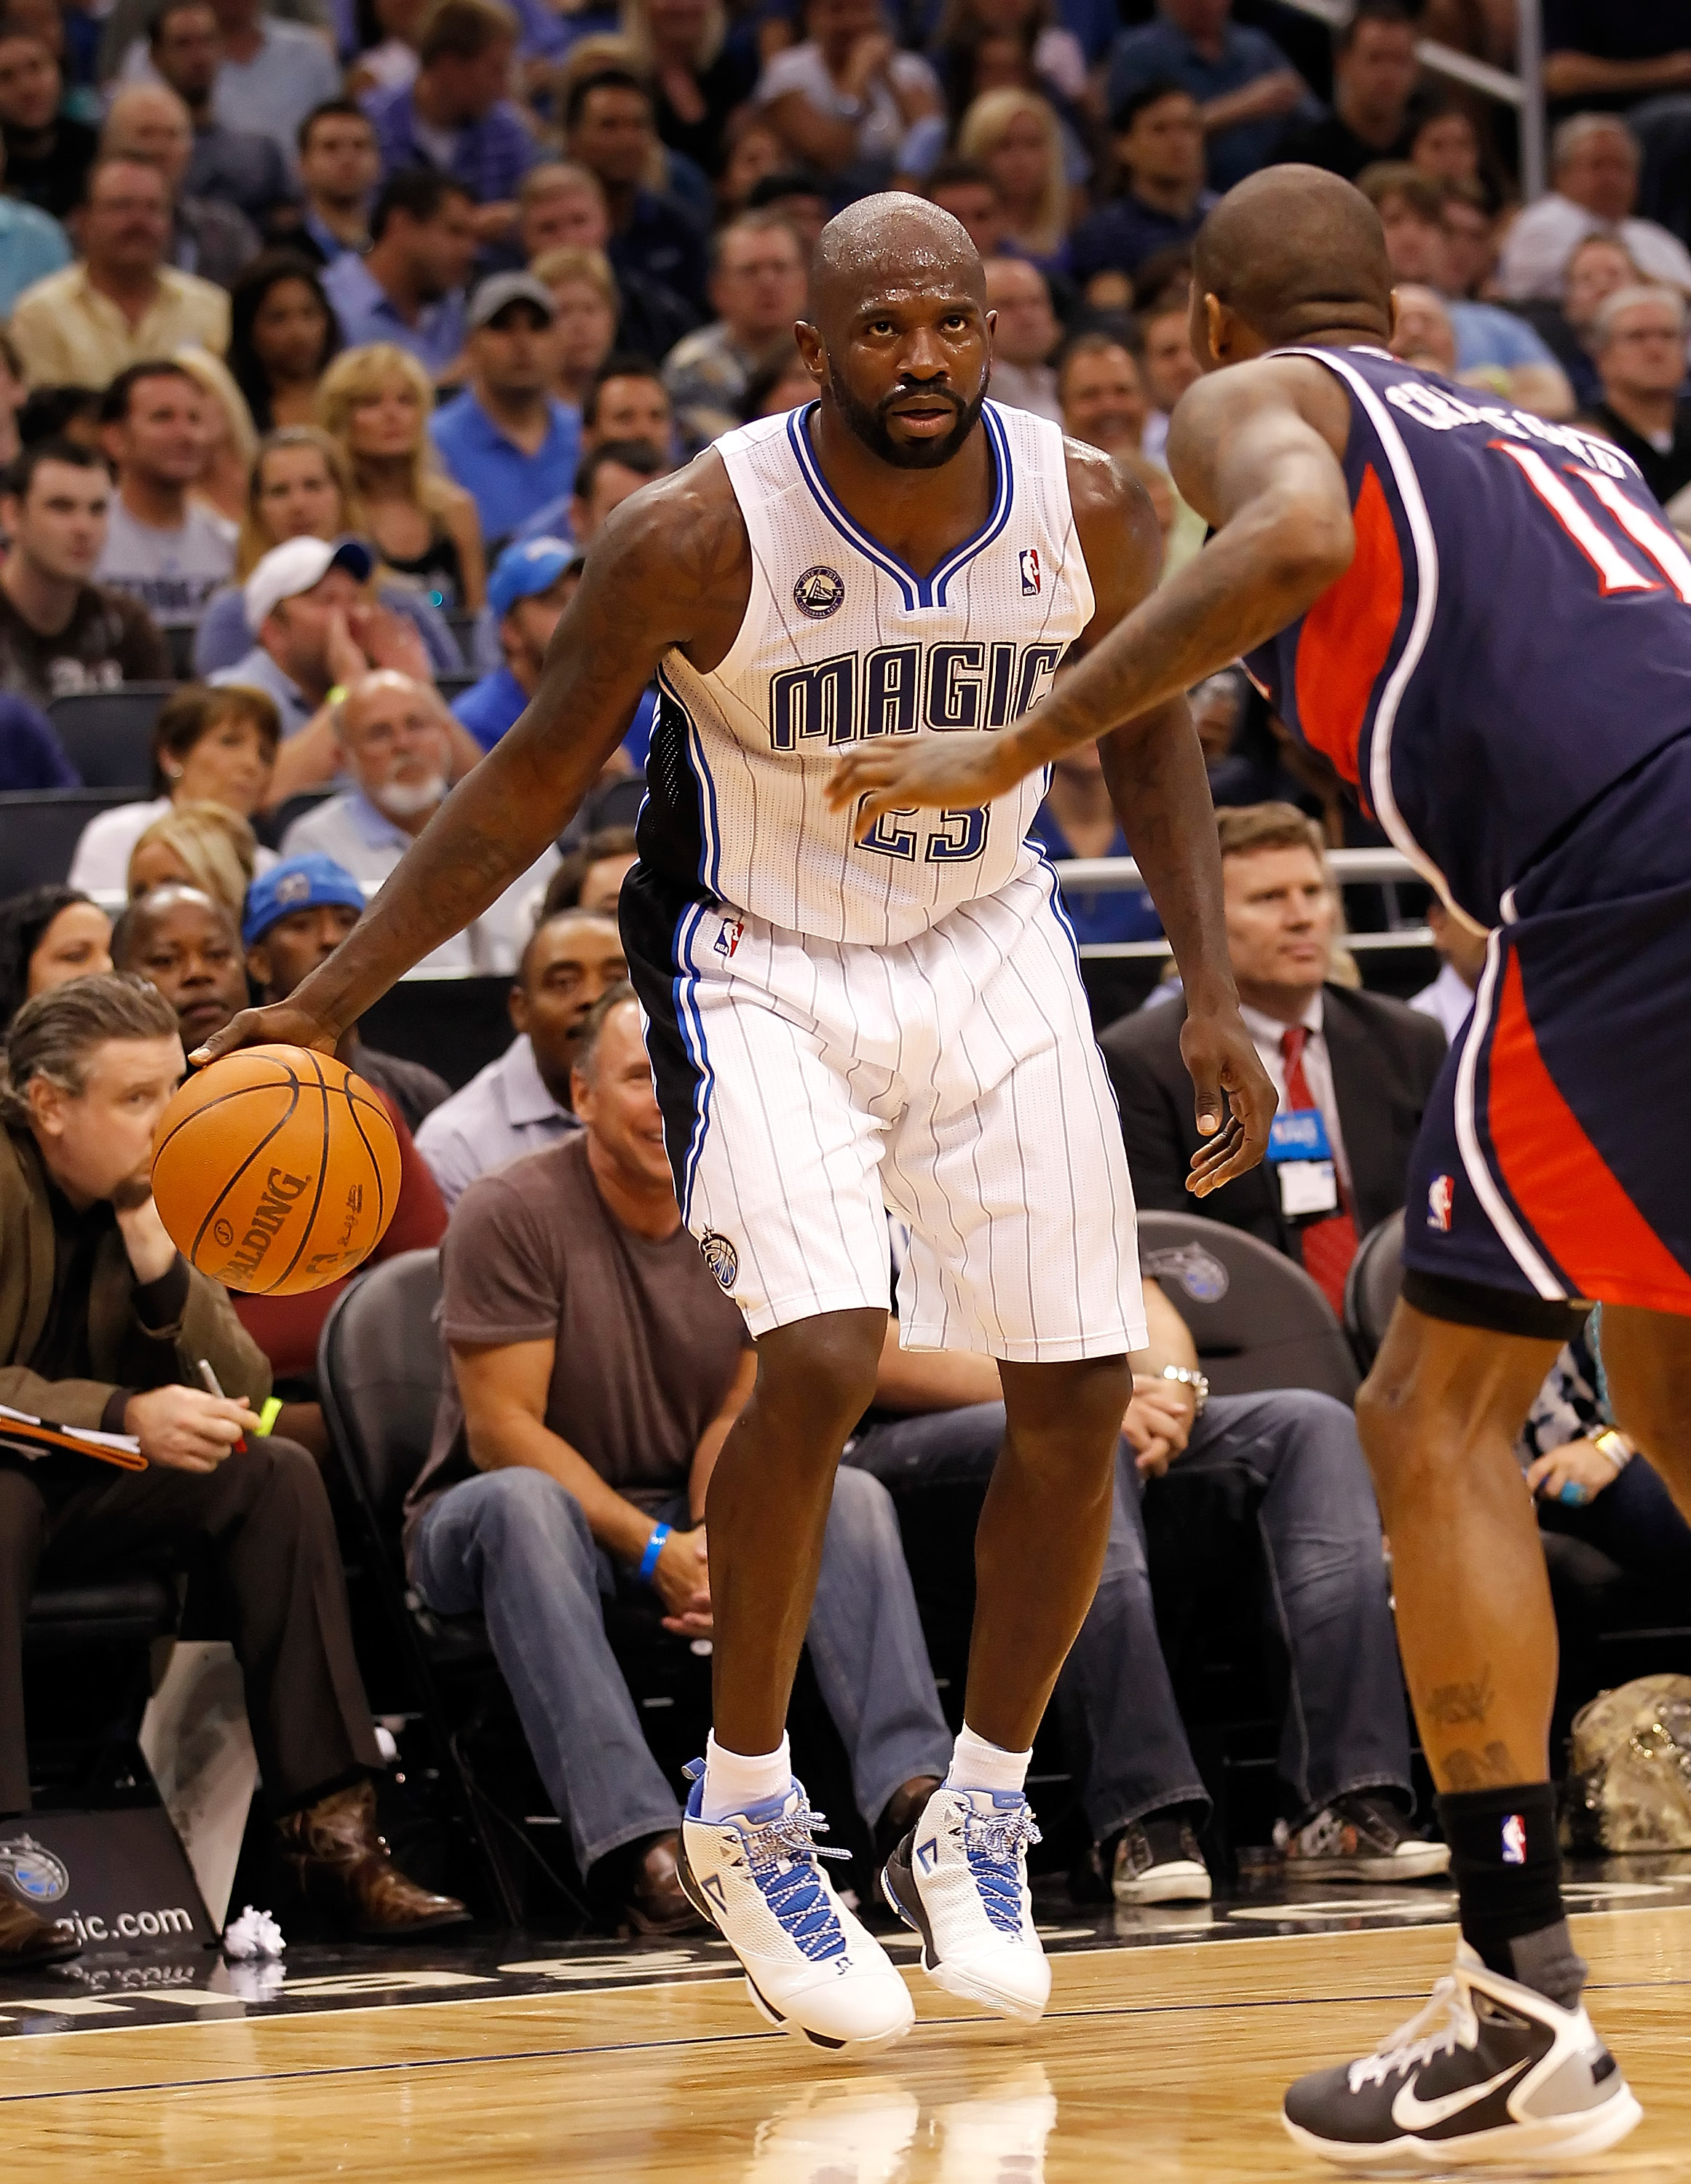 ORLANDO, FL - APRIL 26:  Jason Richardson #23 of the Orlando Magic drives against the Atlanta Hawks during Game Five of the Eastern Conference Quarterfinals of the 2011 NBA Playoffs on April 26, 2011 at the Amway Arena in Orlando, Florida.  NOTE TO USER: